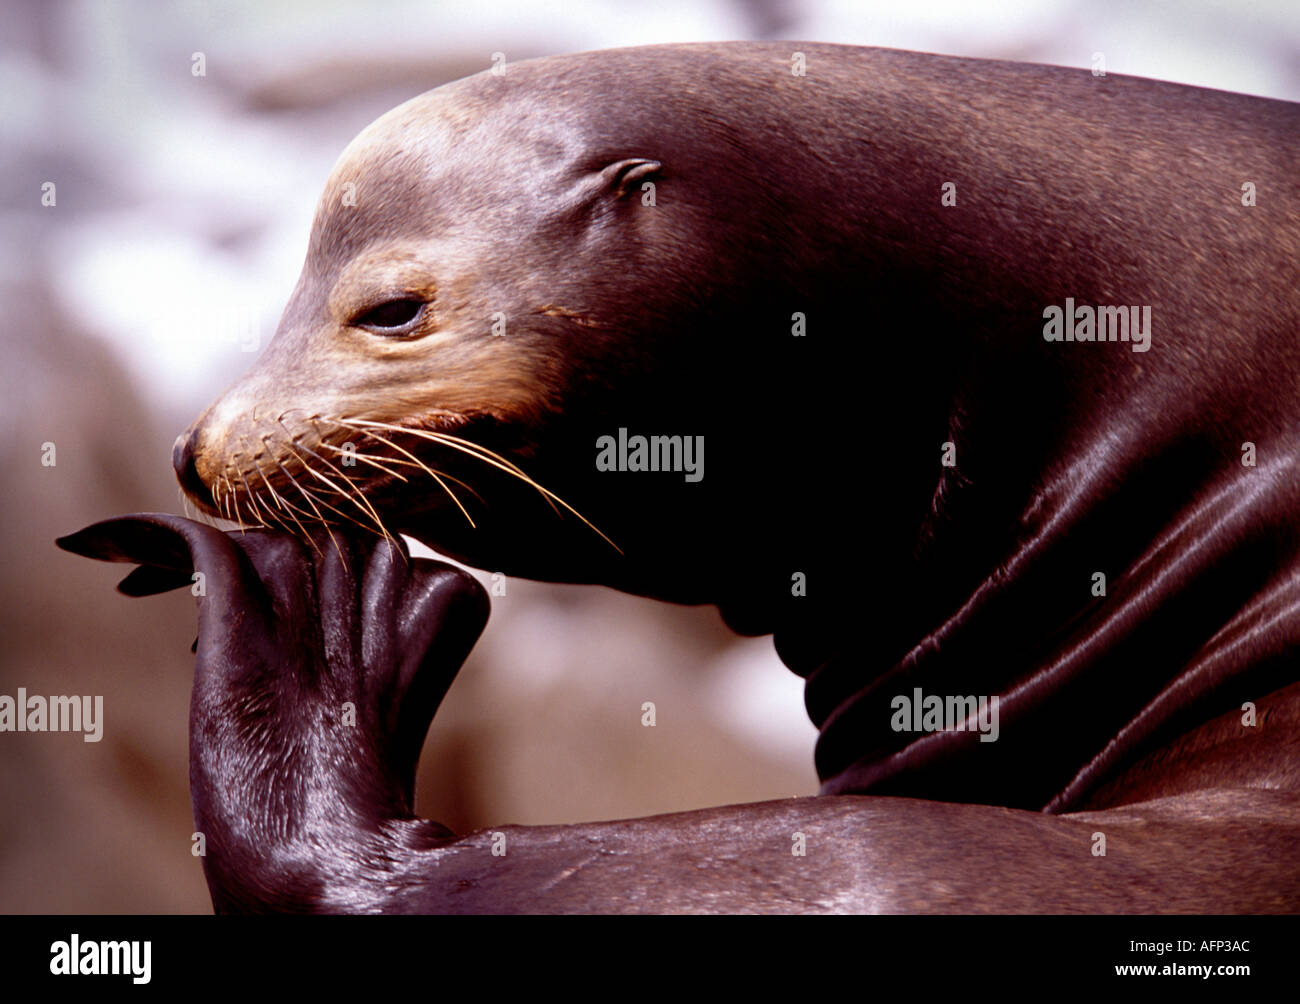 Mexico Baja California Sea of Cortez Sea Lion scratching while sitting on rock - Stock Image